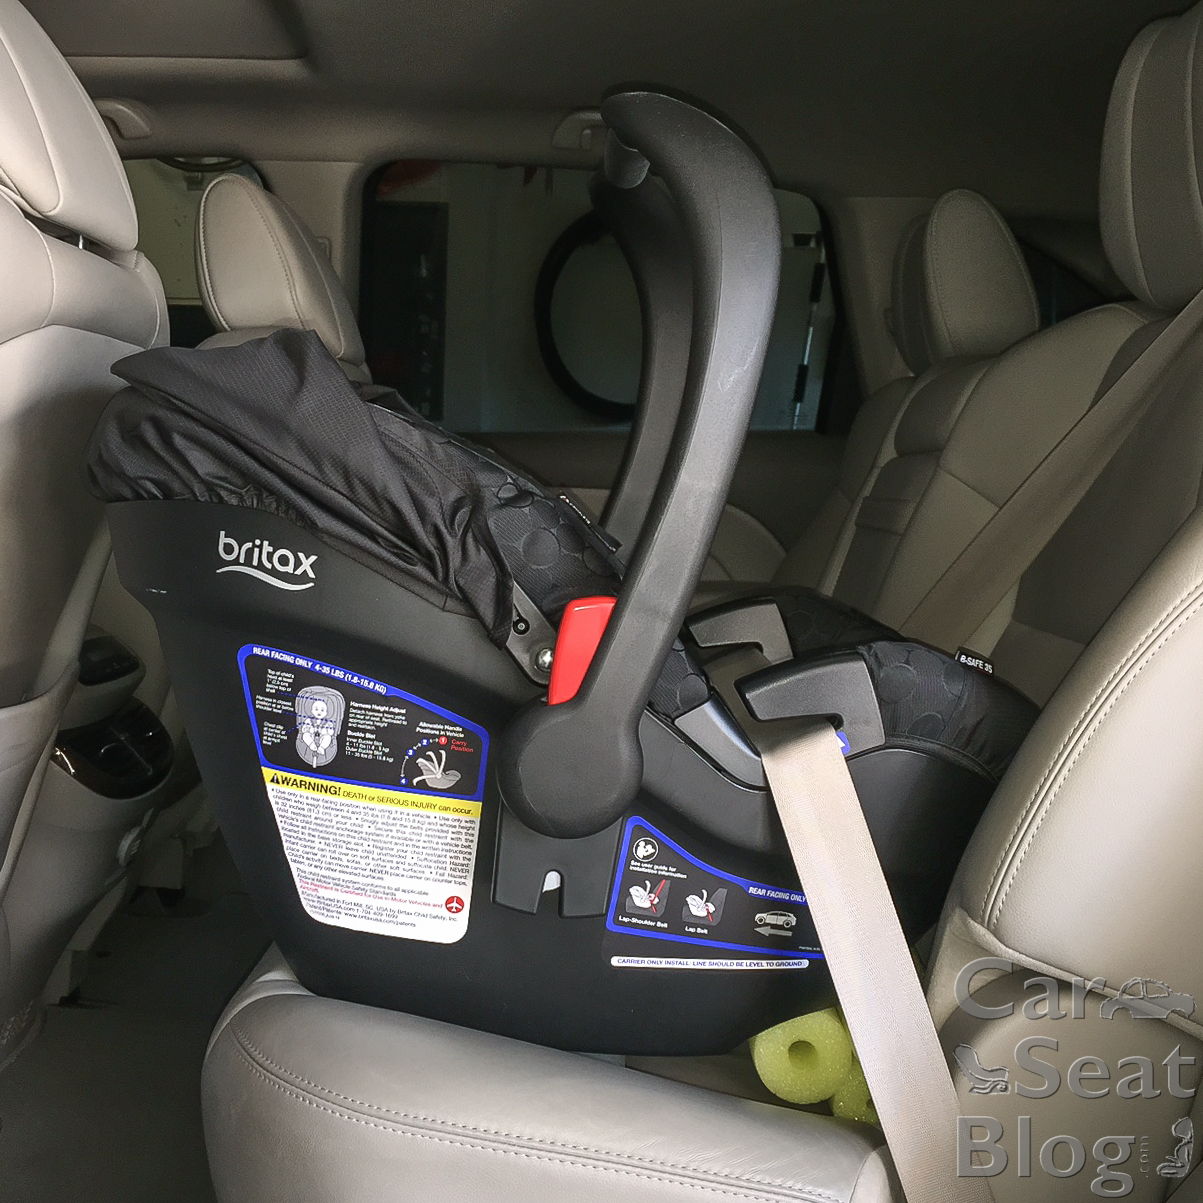 Infant Carrier For Small Car Carseatblog The Most Trusted Source For Car Seat Reviews